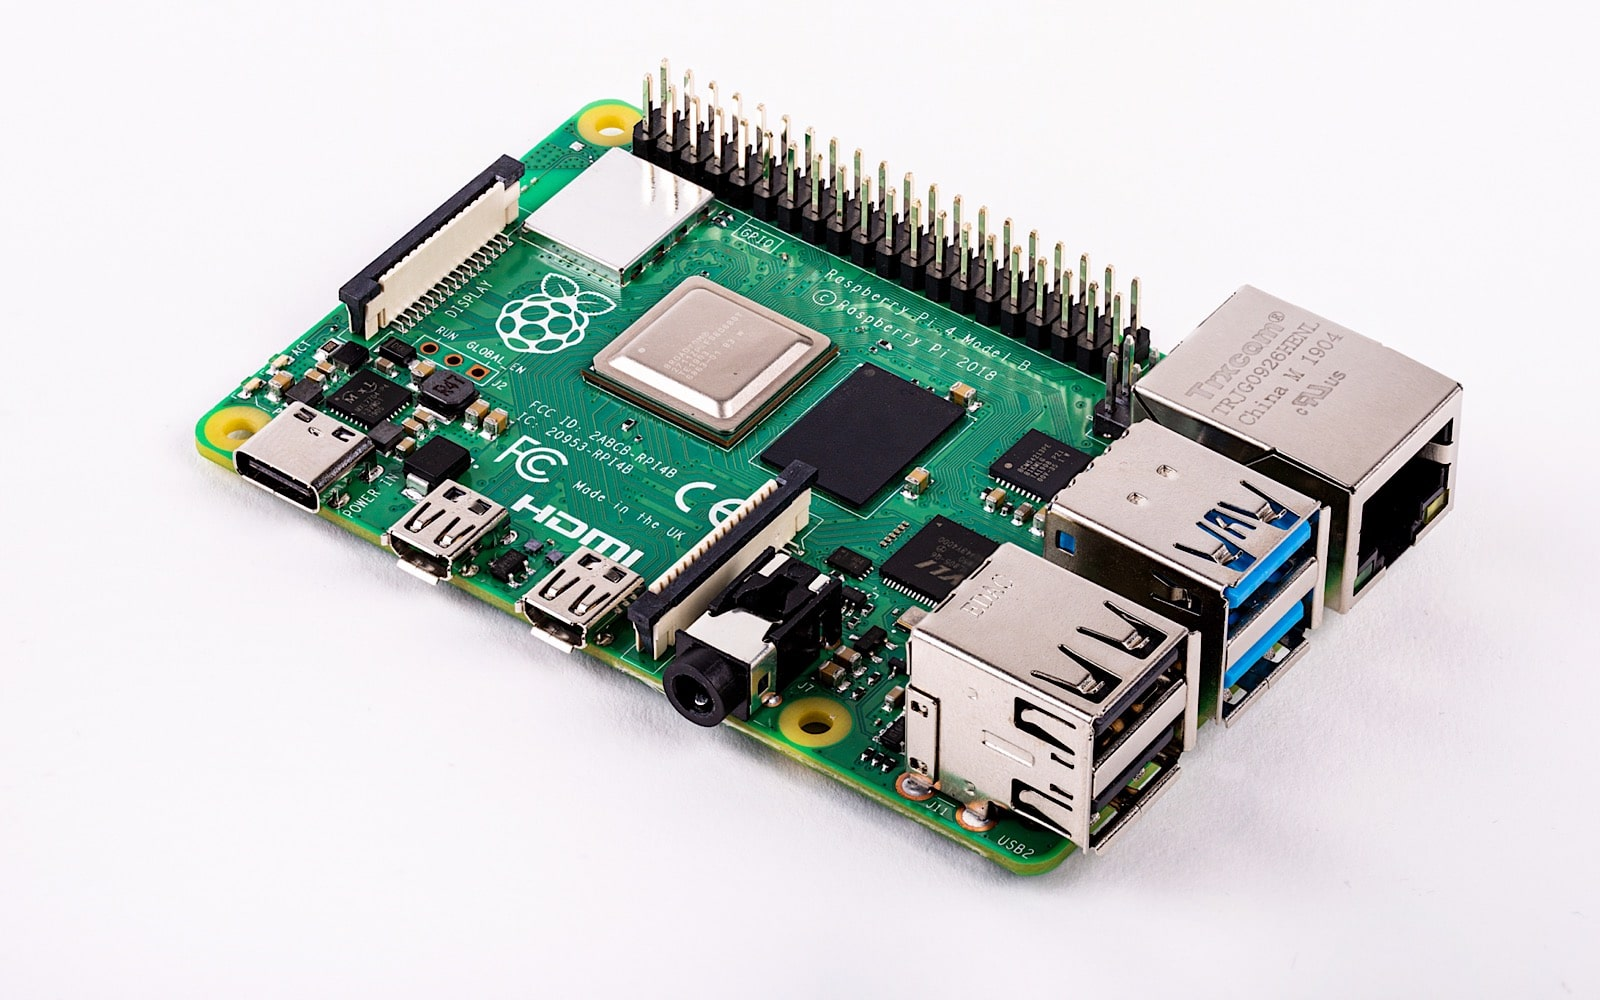 Raspberry Pi 4 Offers Big Performance Boost, More Features for Just $35